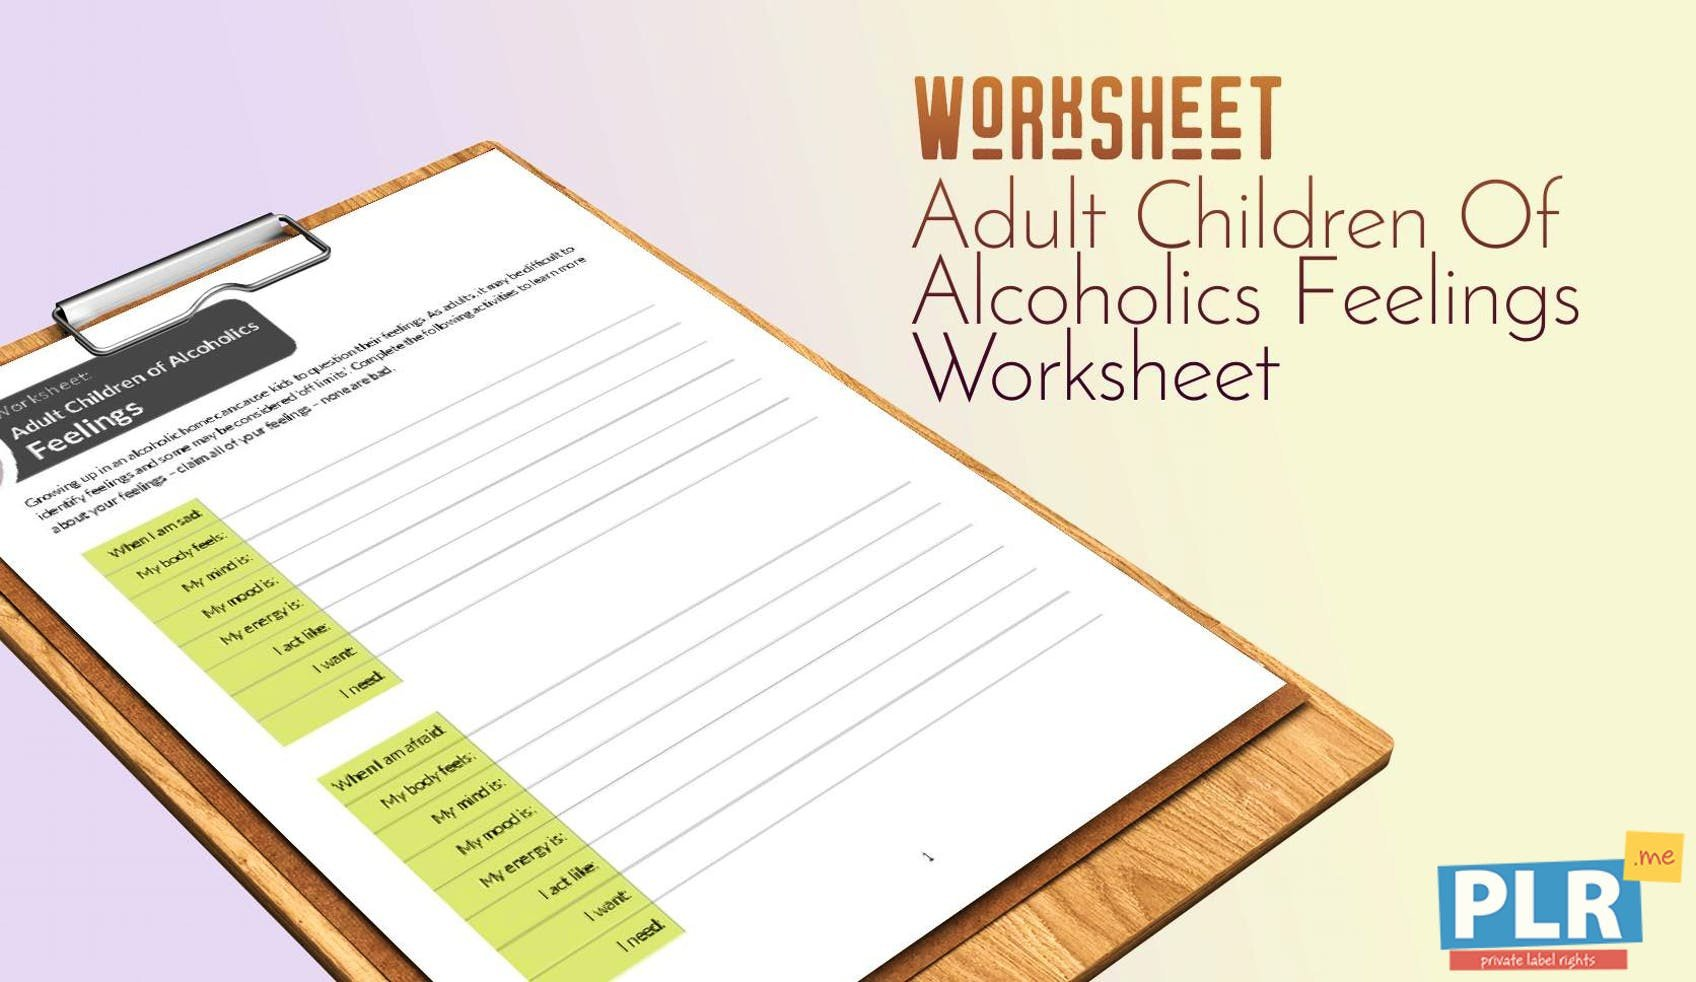 adult children of alcoholics feelings worksheet 1